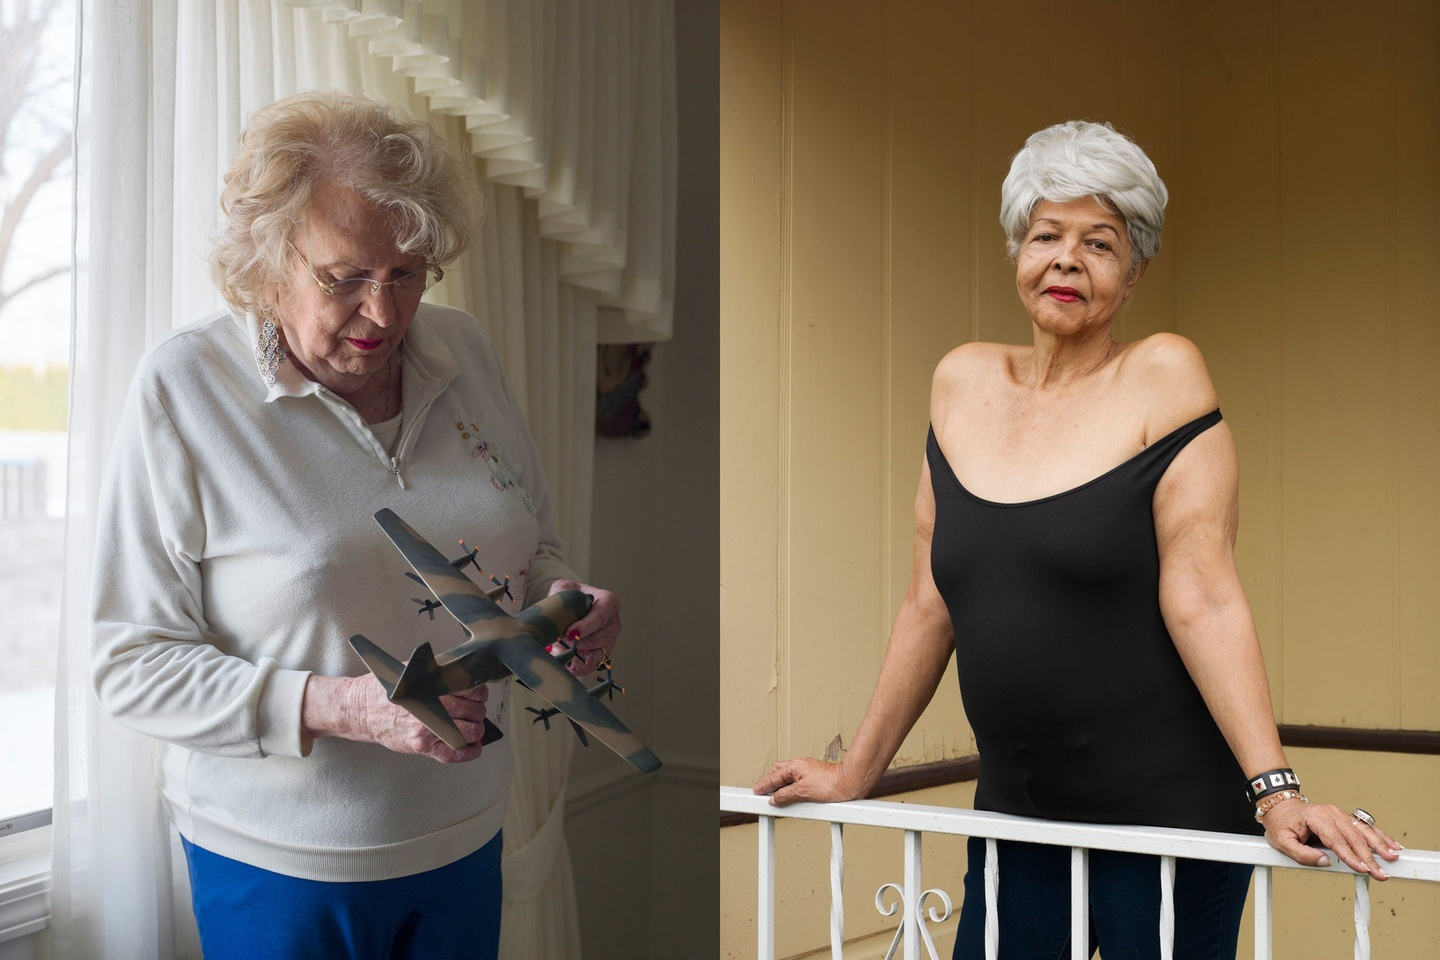 Two photos set side-by-side; the first is an older individual holding and looking at a miniature airplane; the second is of an individual in a black dress, standing tall holding onto a railing.